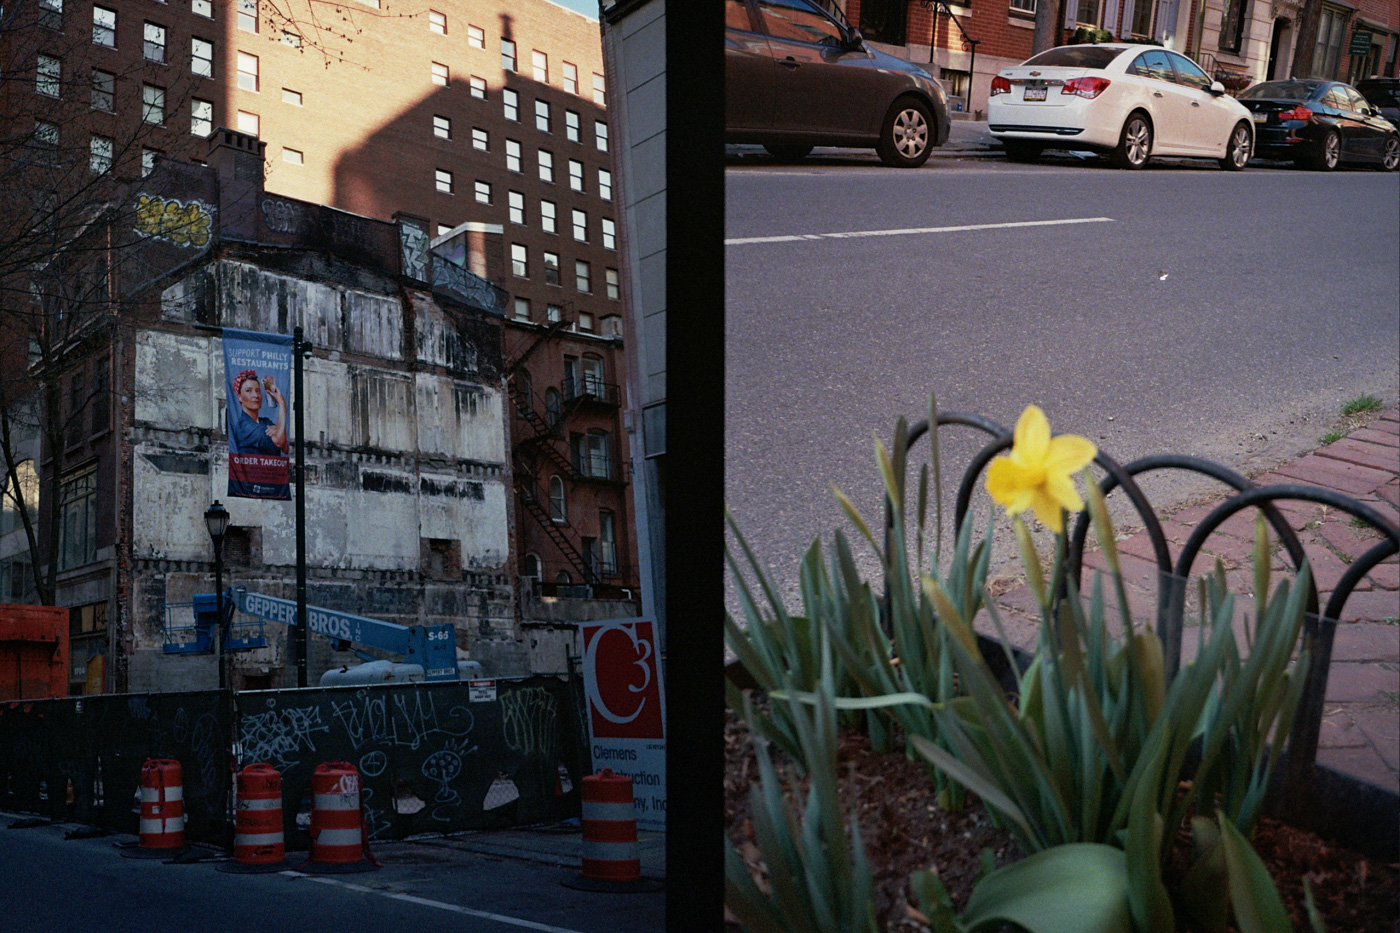 Building Demolition and a Daffodil